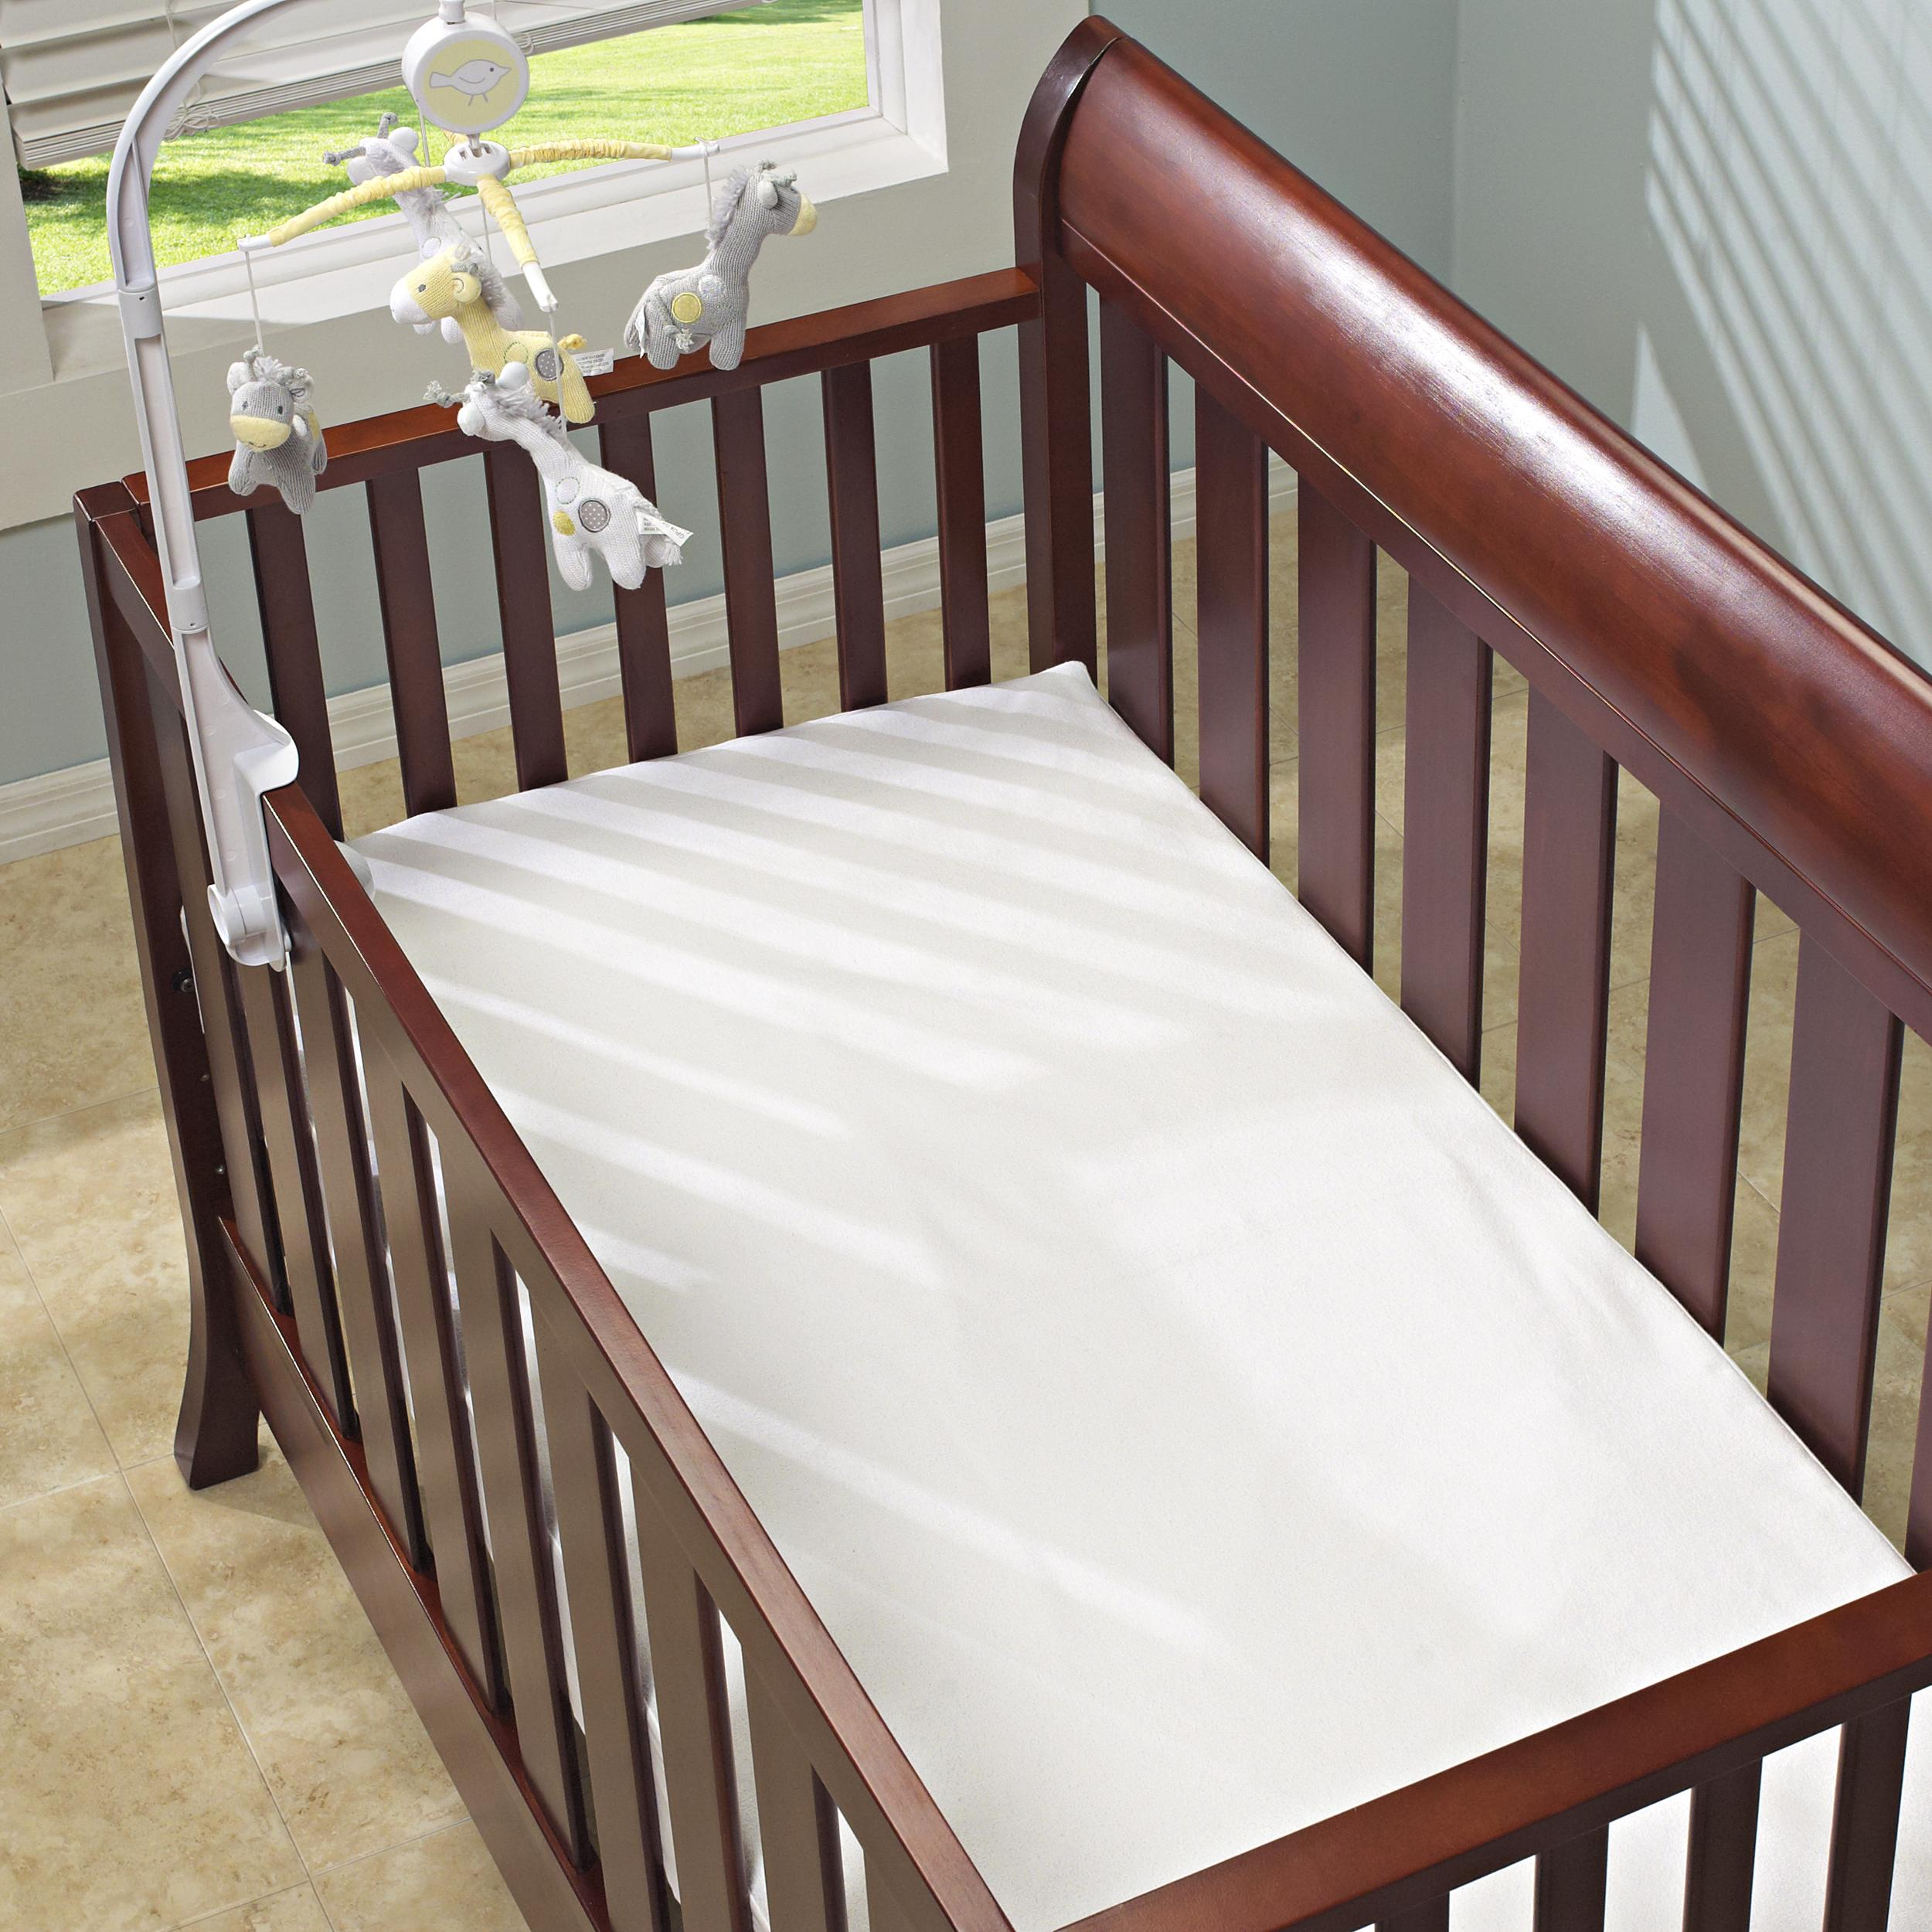 a ikea standard mattresses size independent uses cribs amazing is the superior this x are design crib of what mattress best